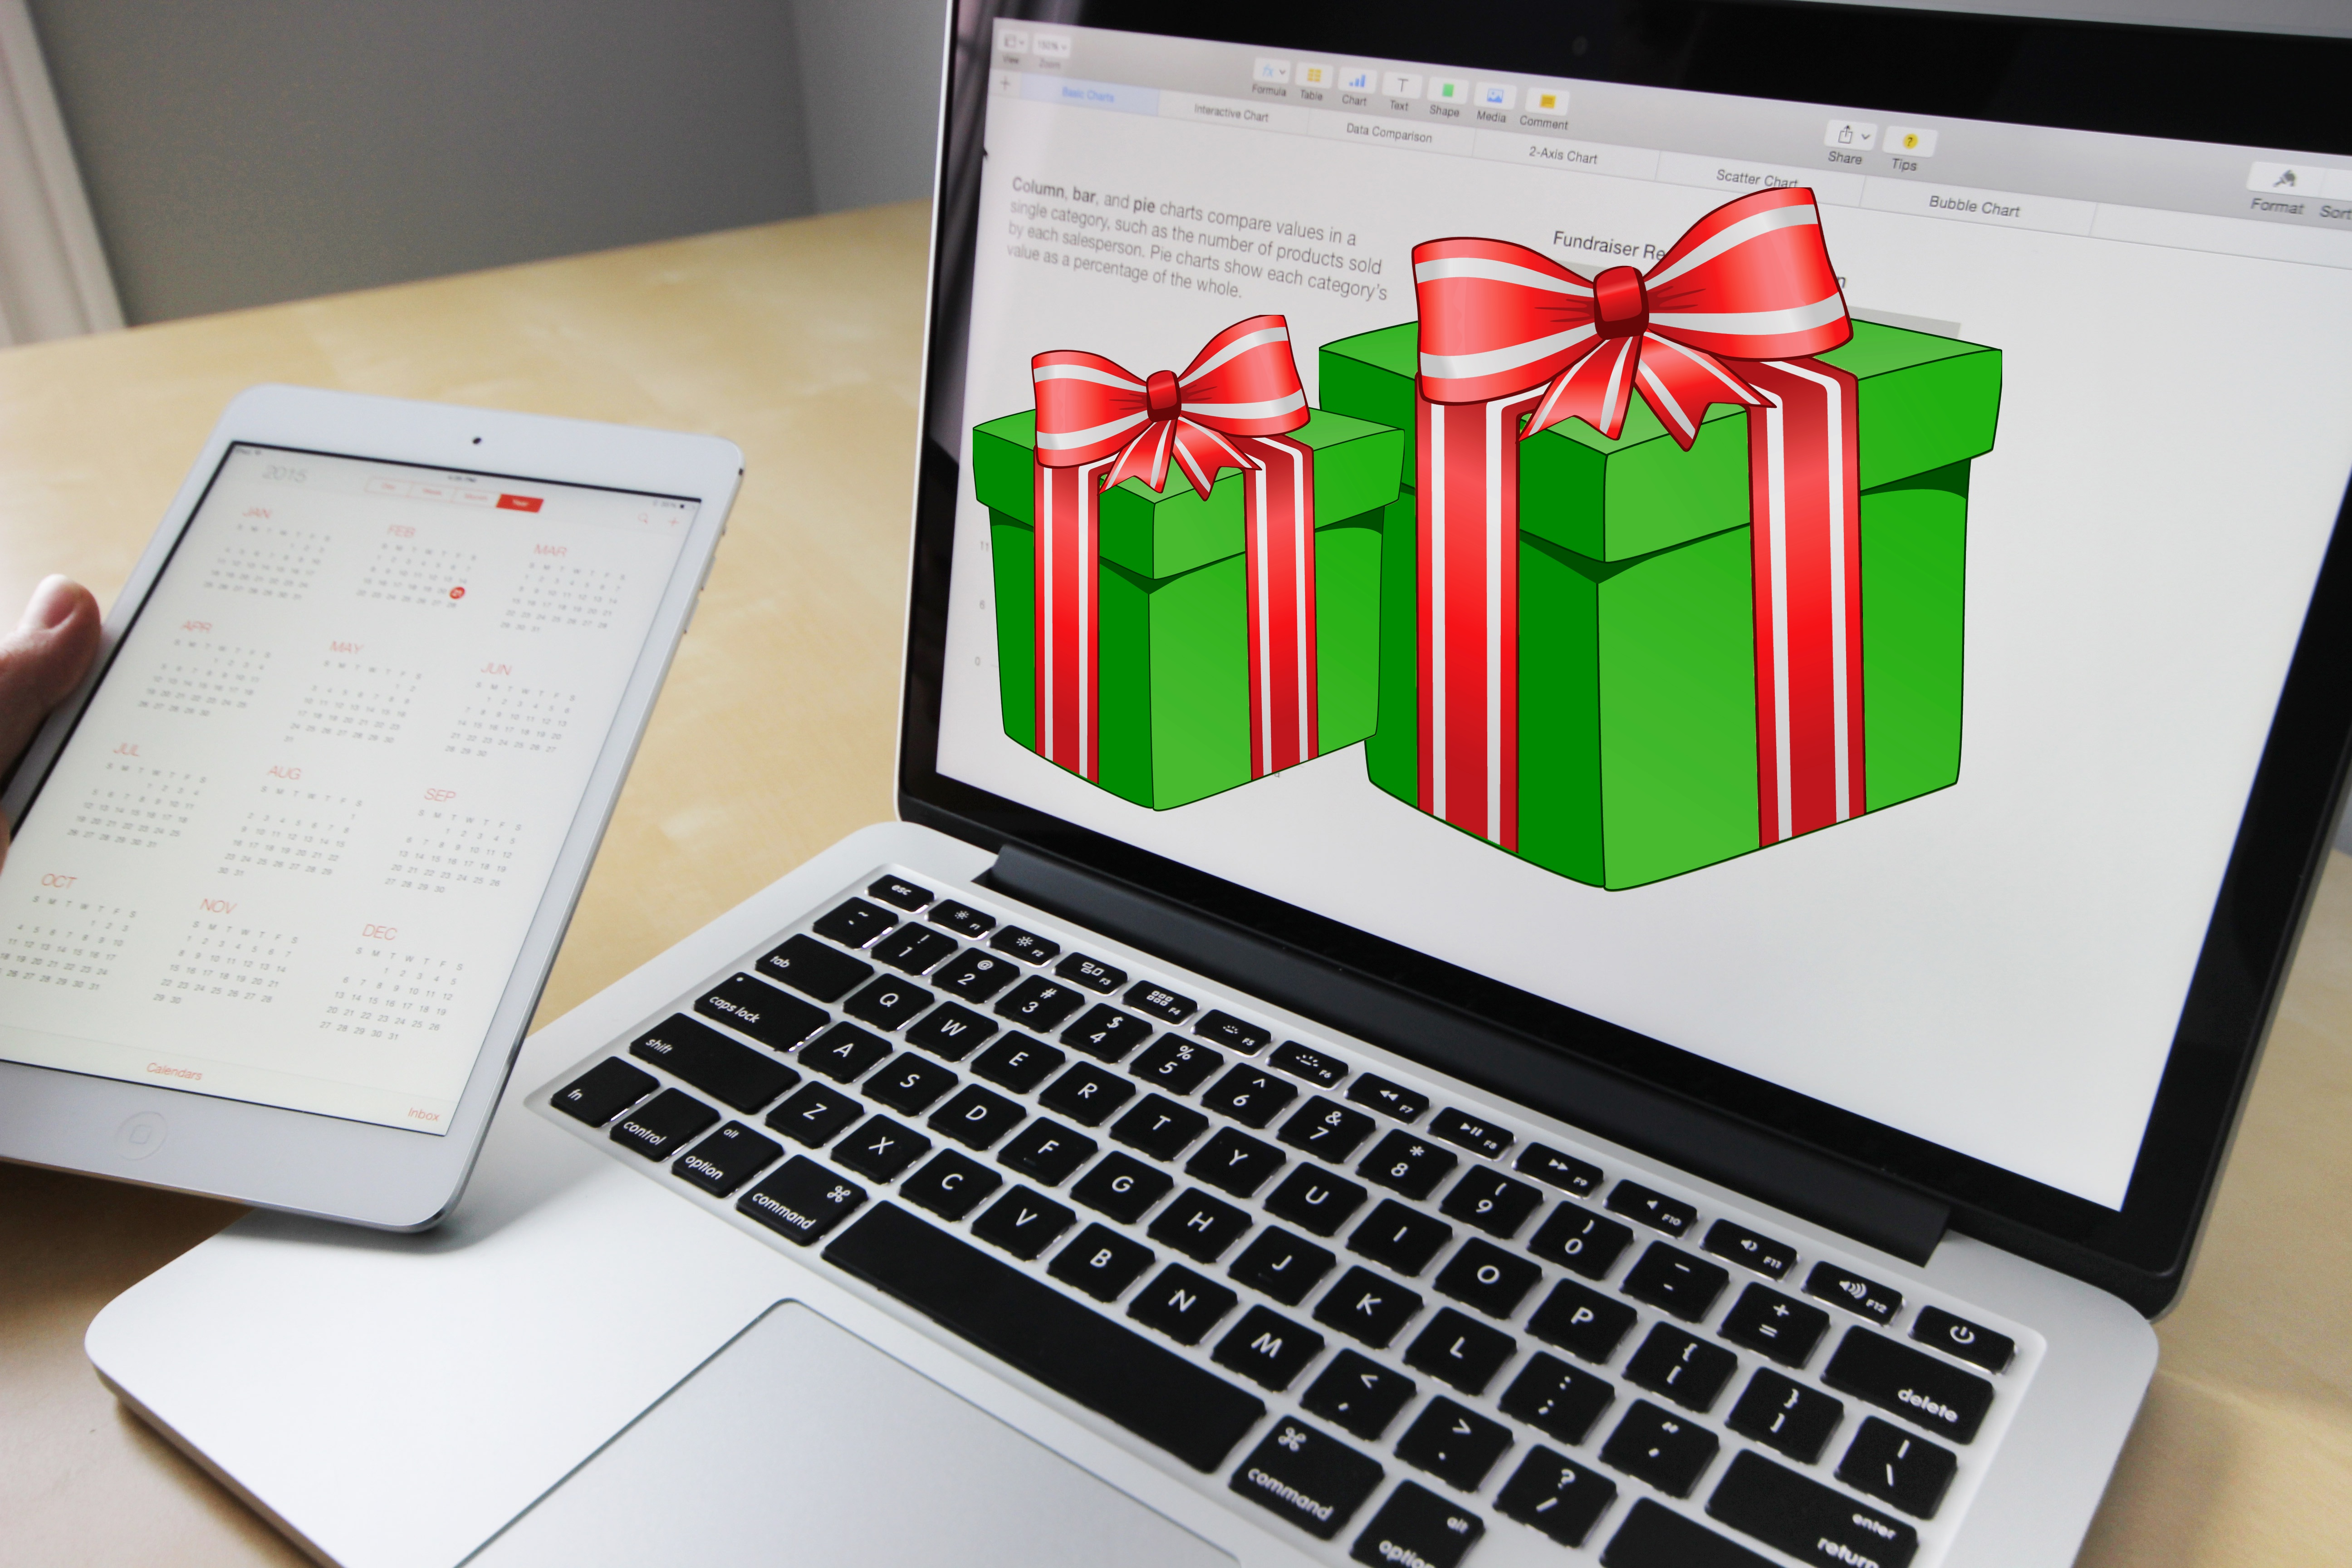 Laptop computer showing two holiday gifts on the screen with green boxes and red and white bows